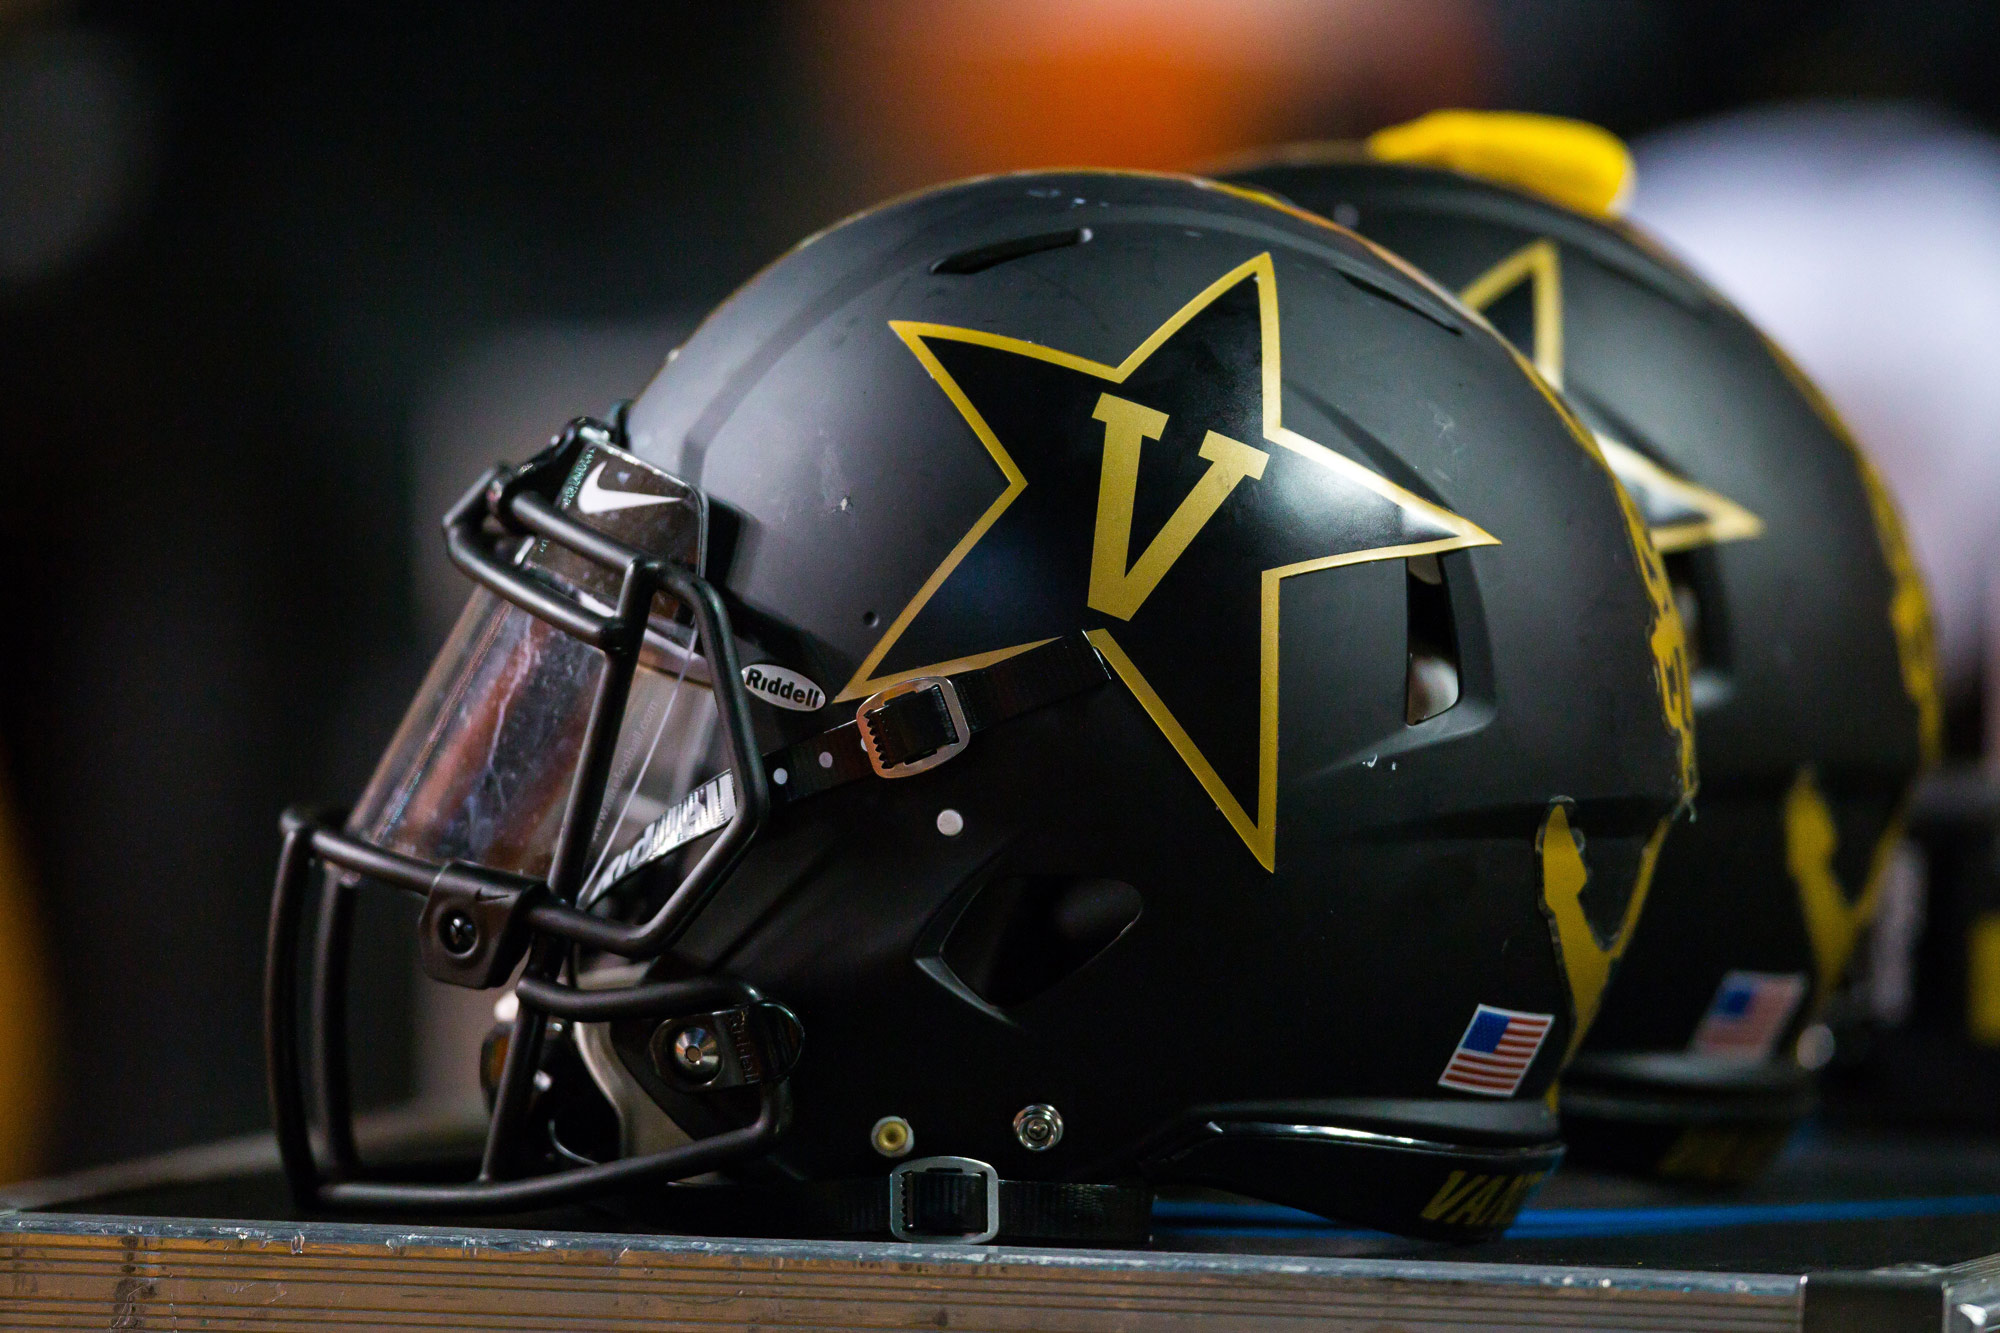 Vanderbilt Commodores helmets are seen during a football game at Neyland Stadium in Knoxville, Tennessee, on November 25, 2017.